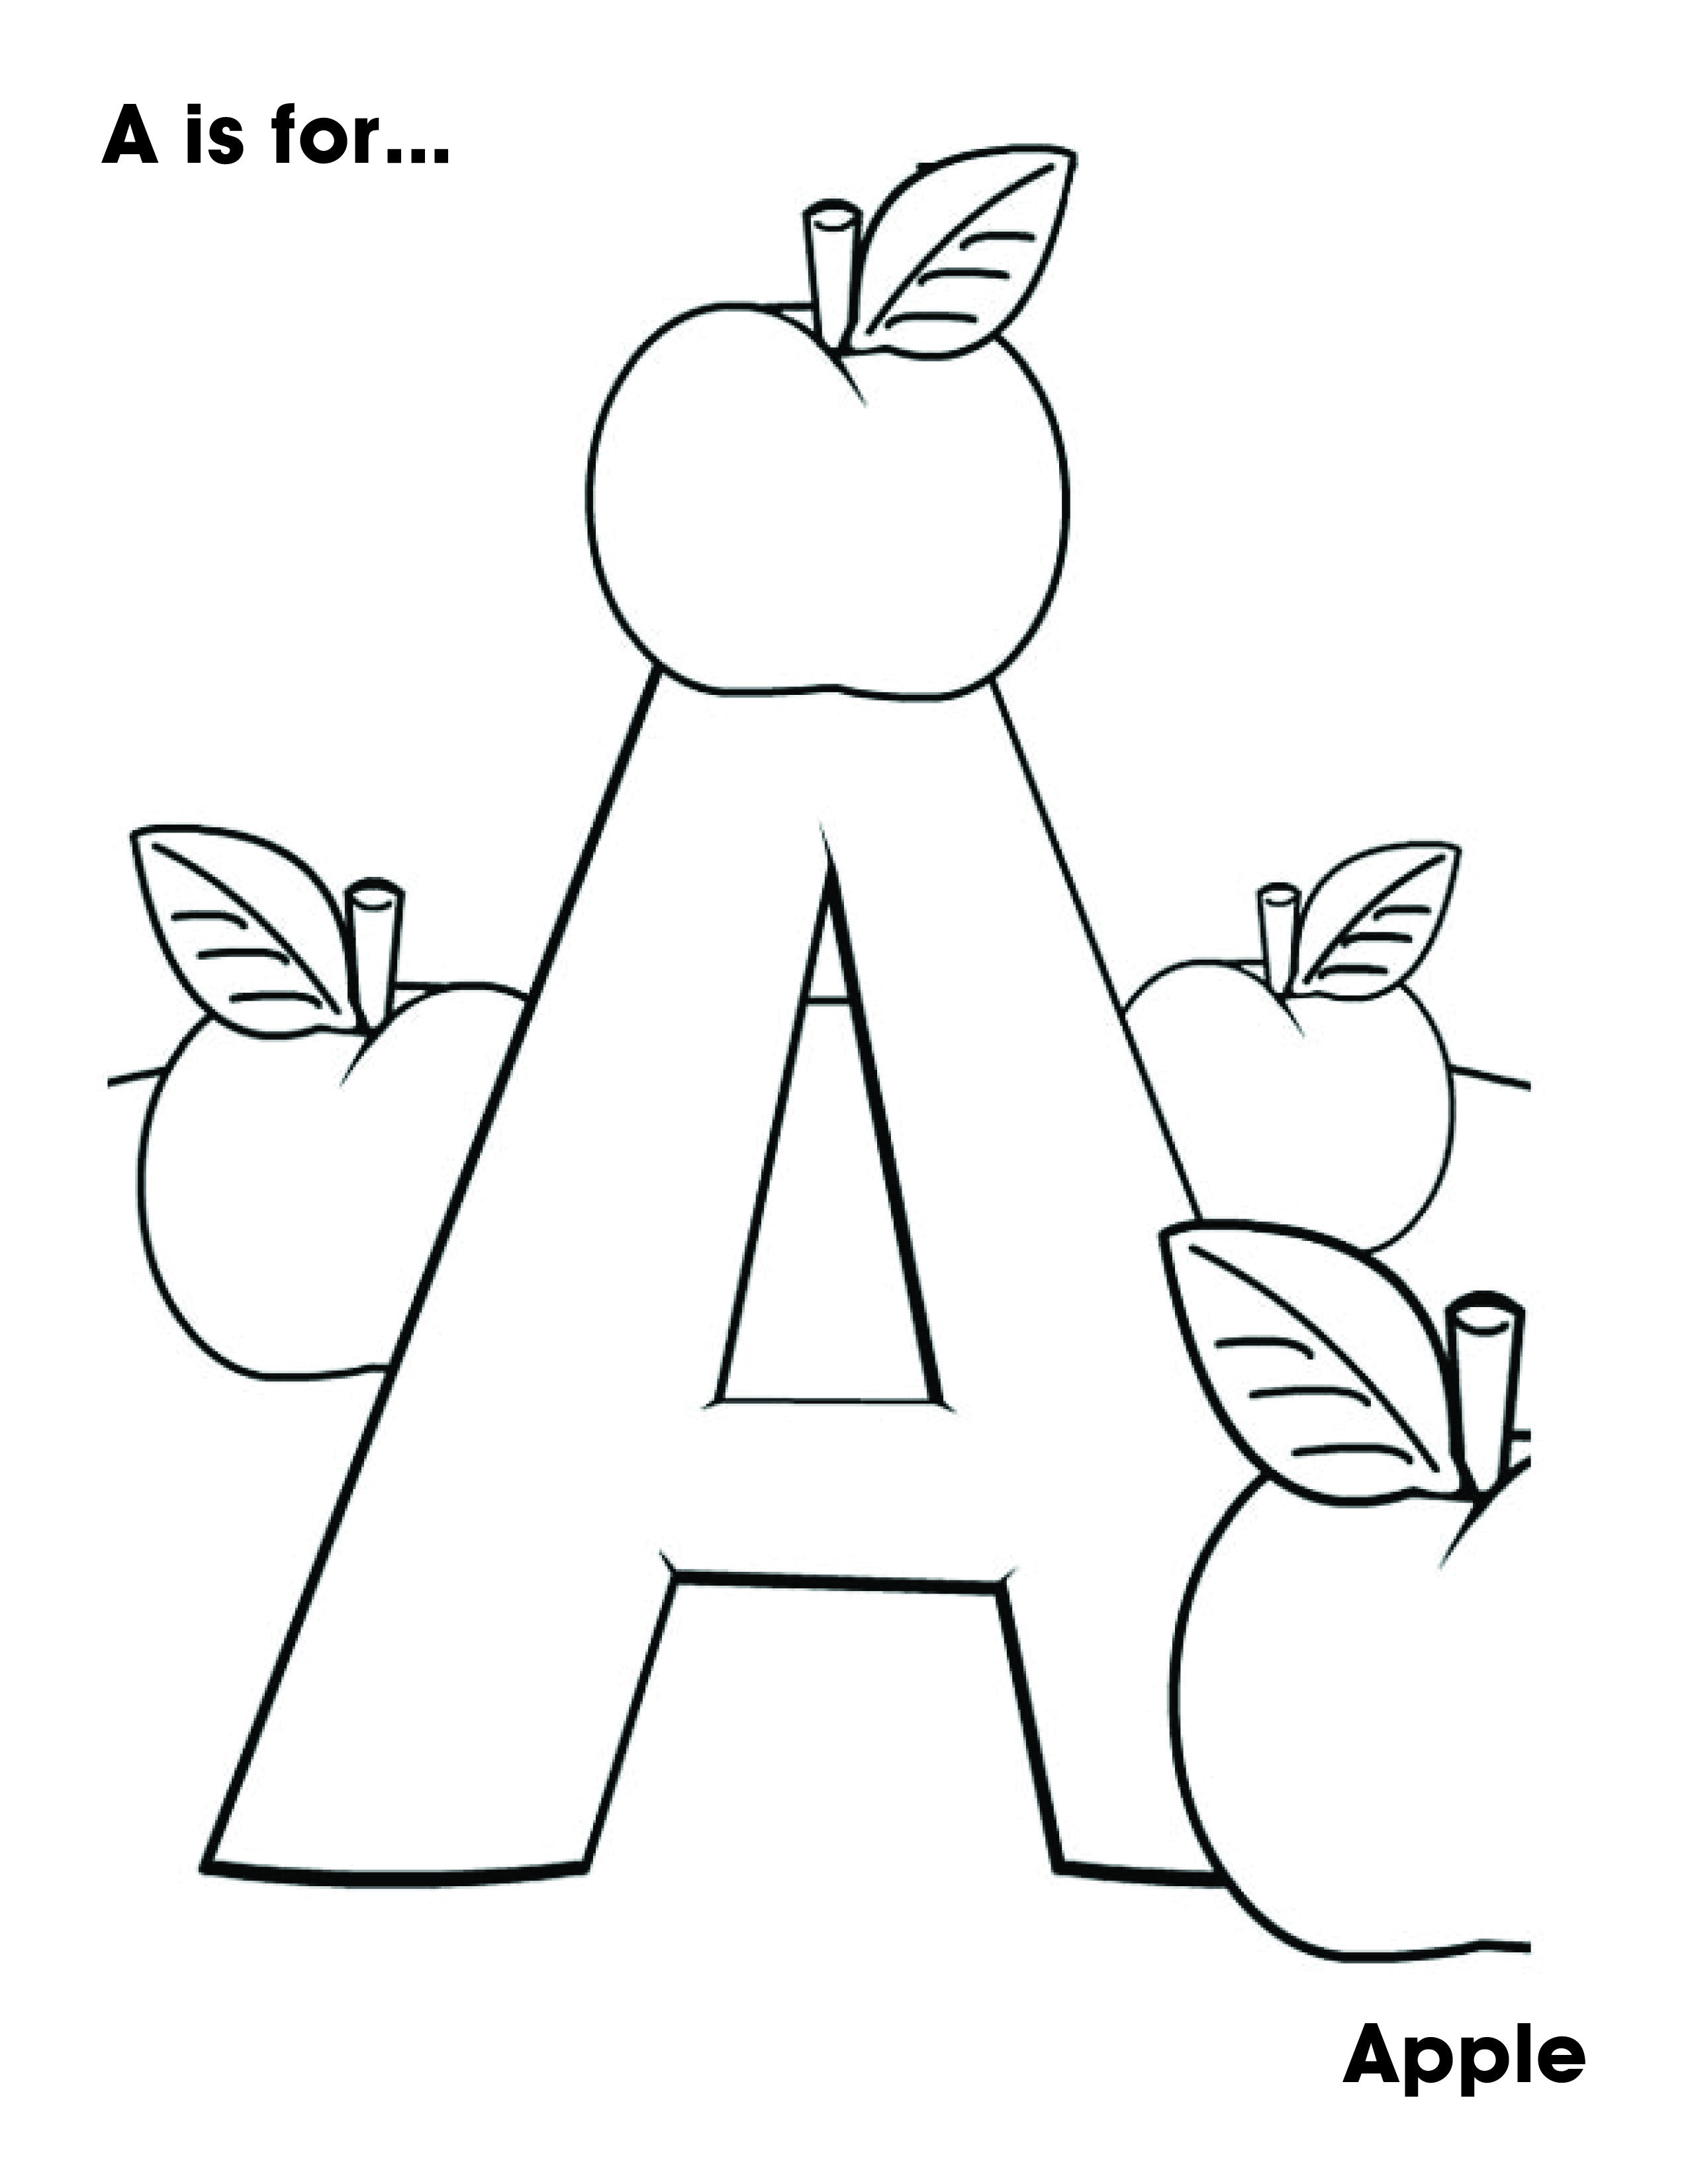 A Is For Apple Alphabet Coloring Pages Kindergarten Coloring Pages Abc Coloring Pages